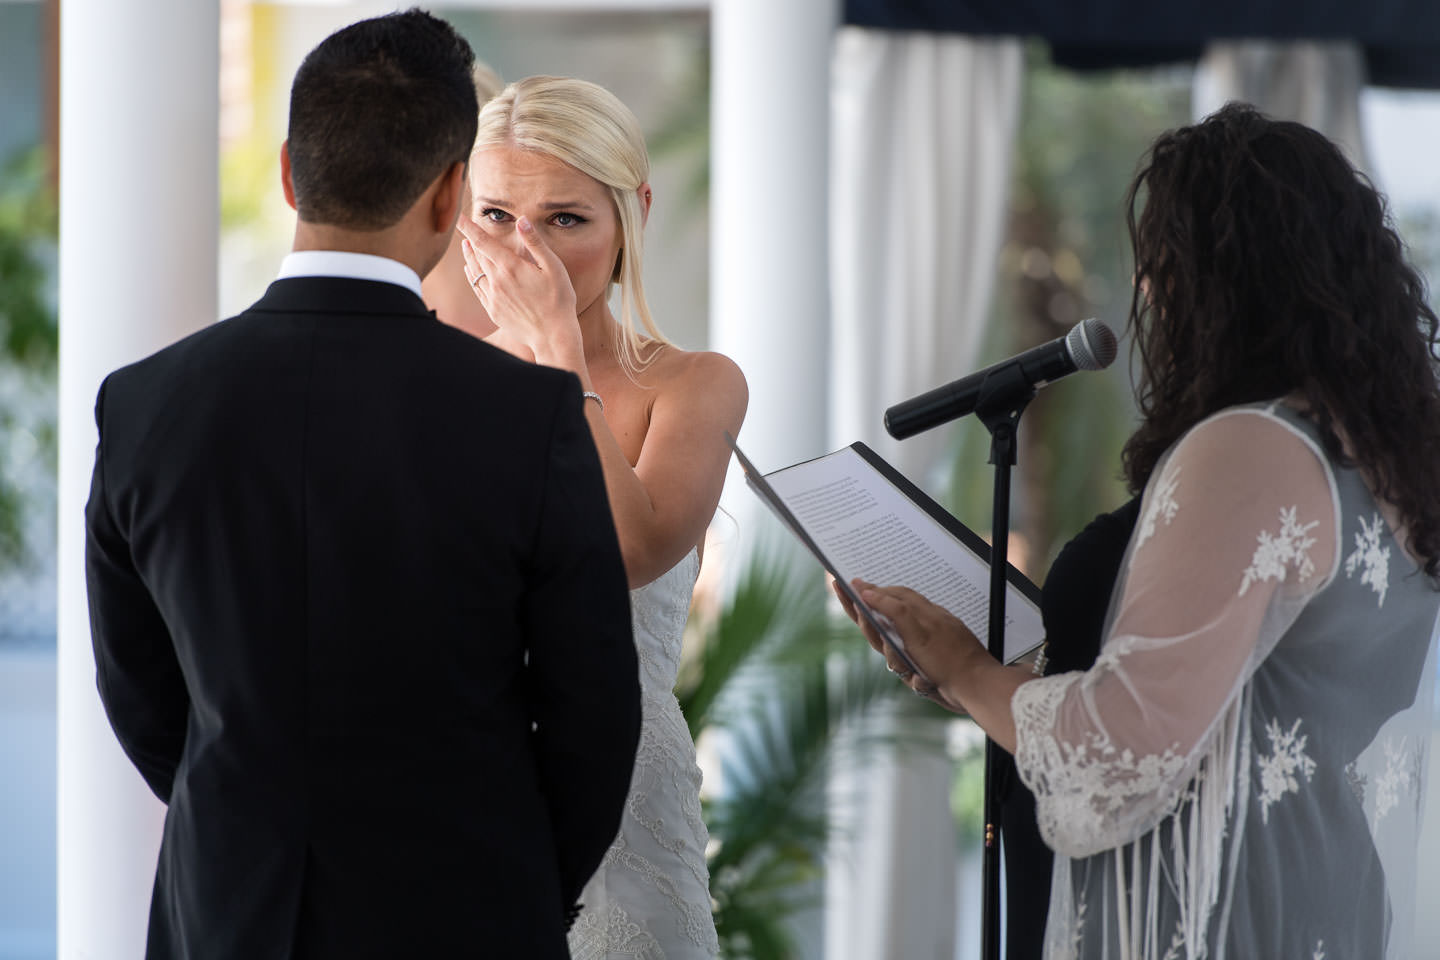 bride crying over groom's shoulder at wedding ceremony in Chateau Briand Caterers long island new york luxury high end wedding